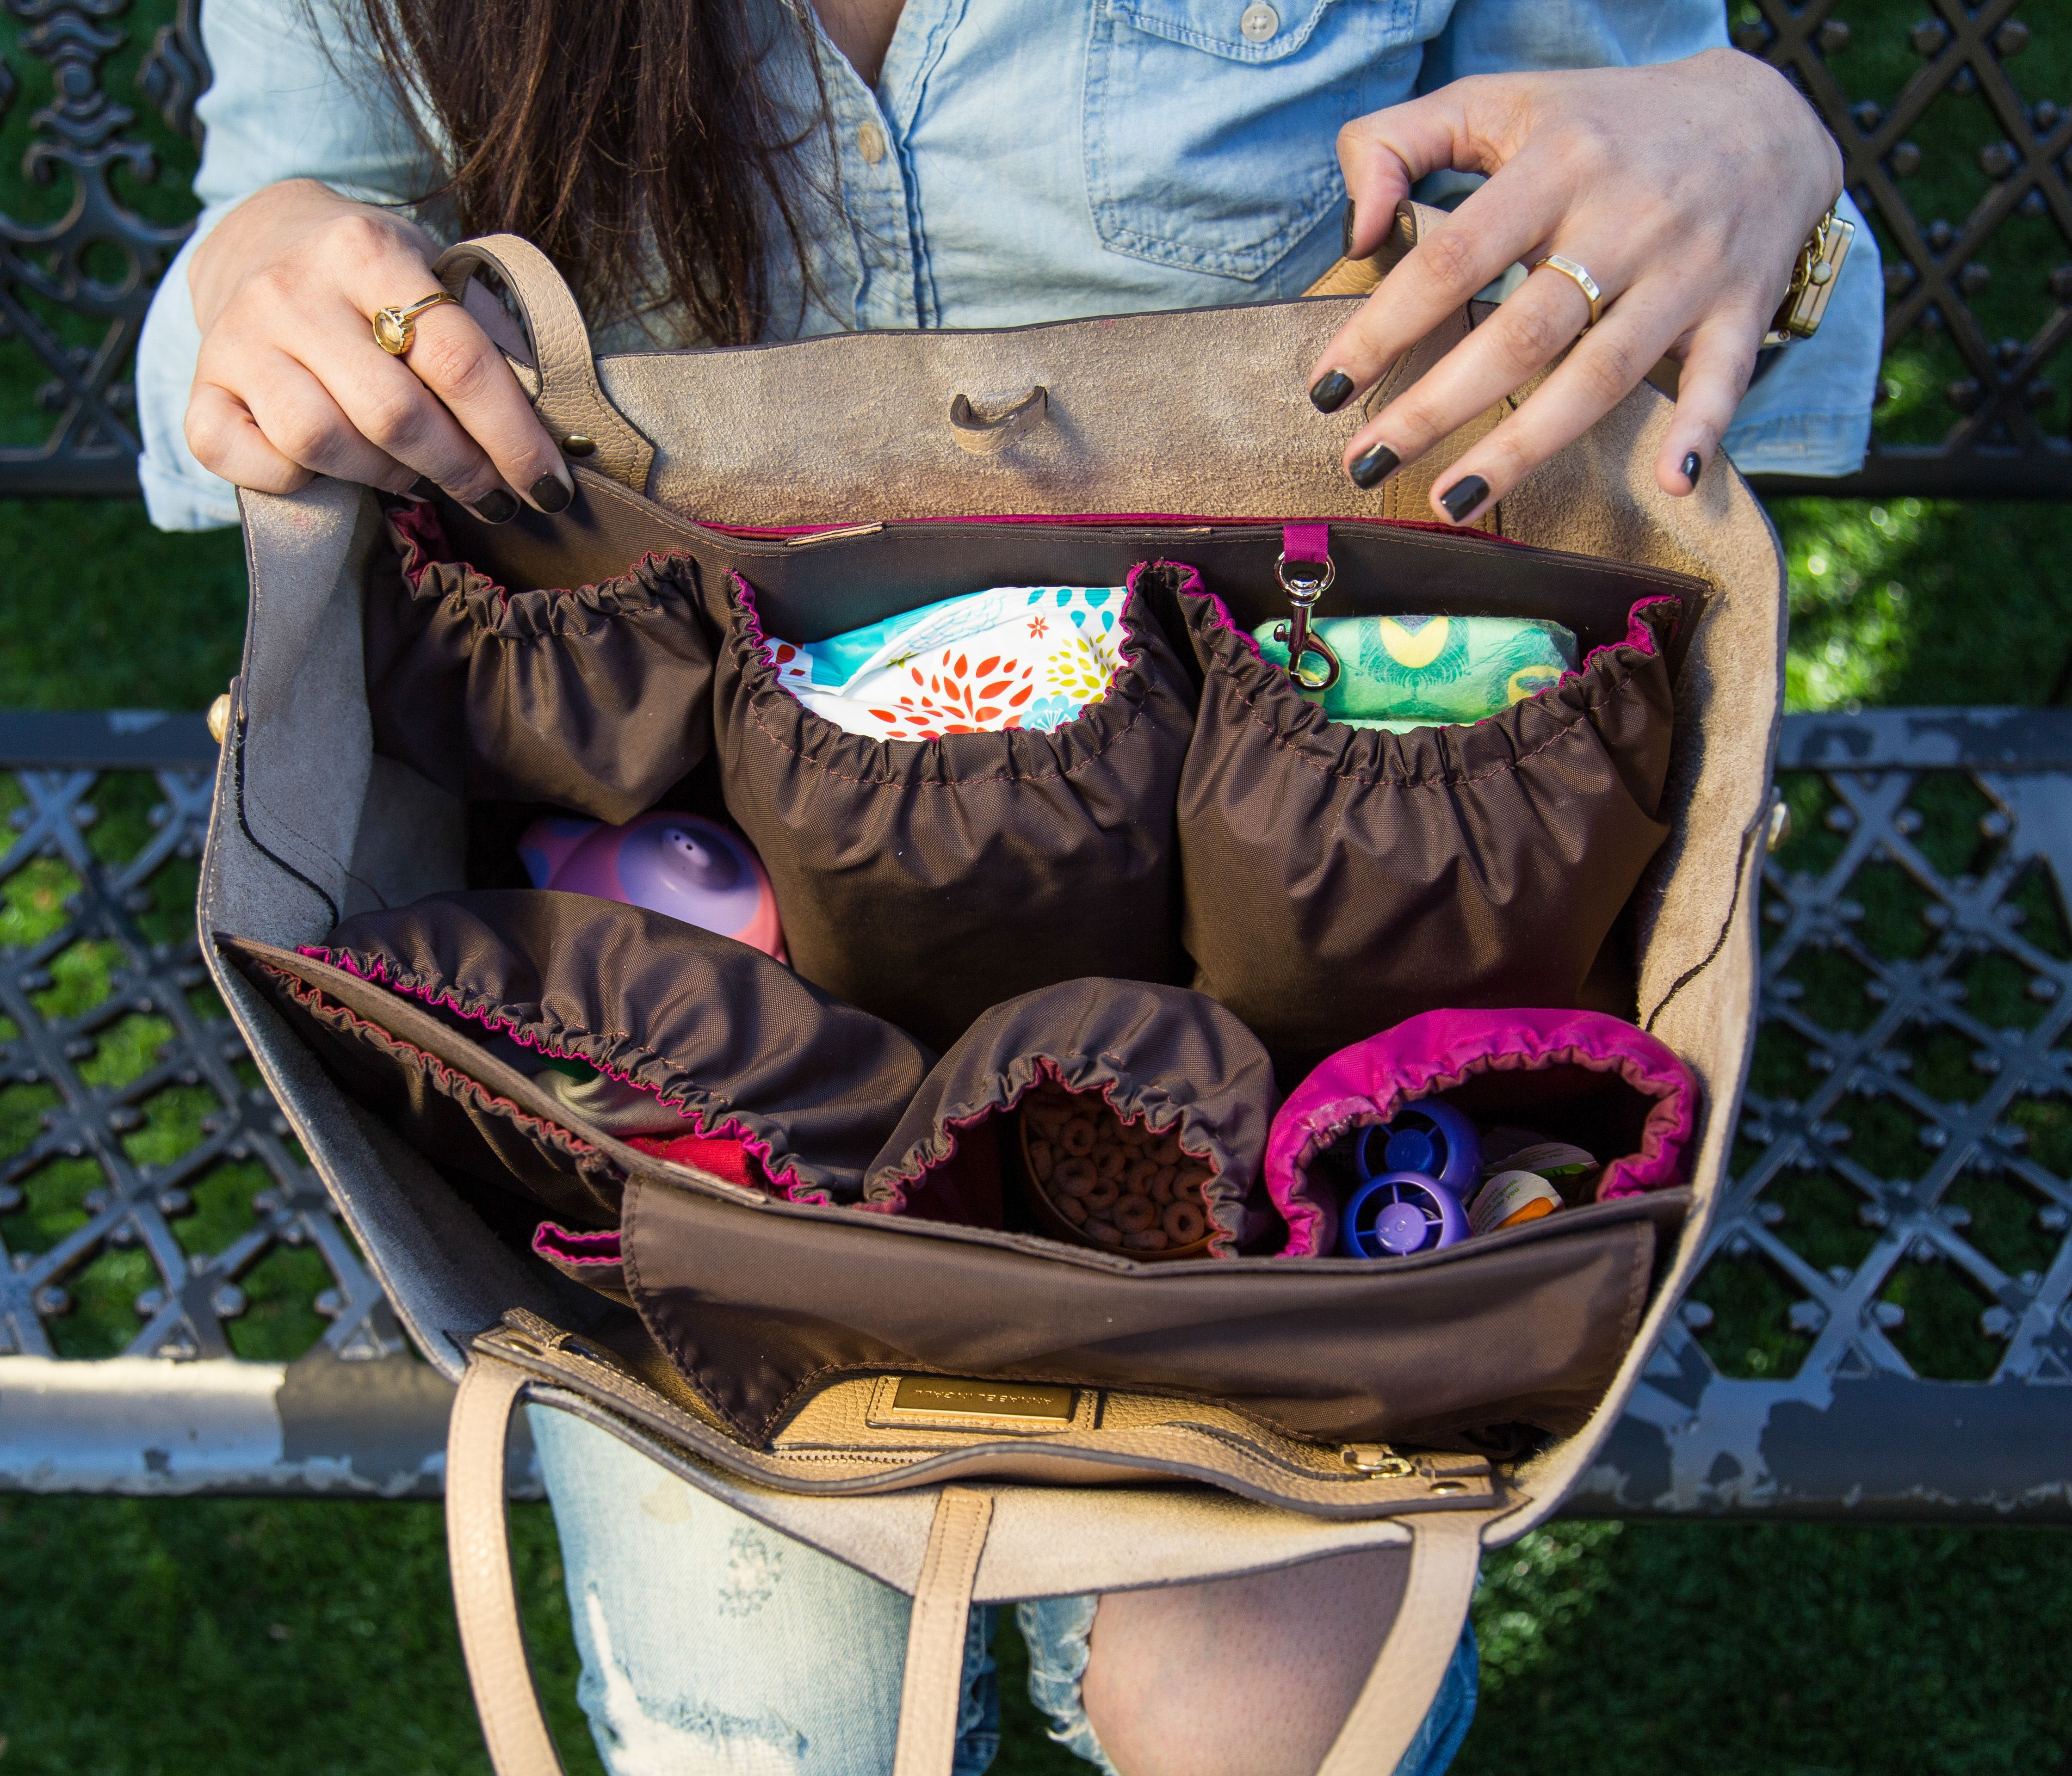 The Handbag Organizer From Life In Play Allows A Busy And Stylish Mom To Use Any Turn It Into An Organized Diaper Bag